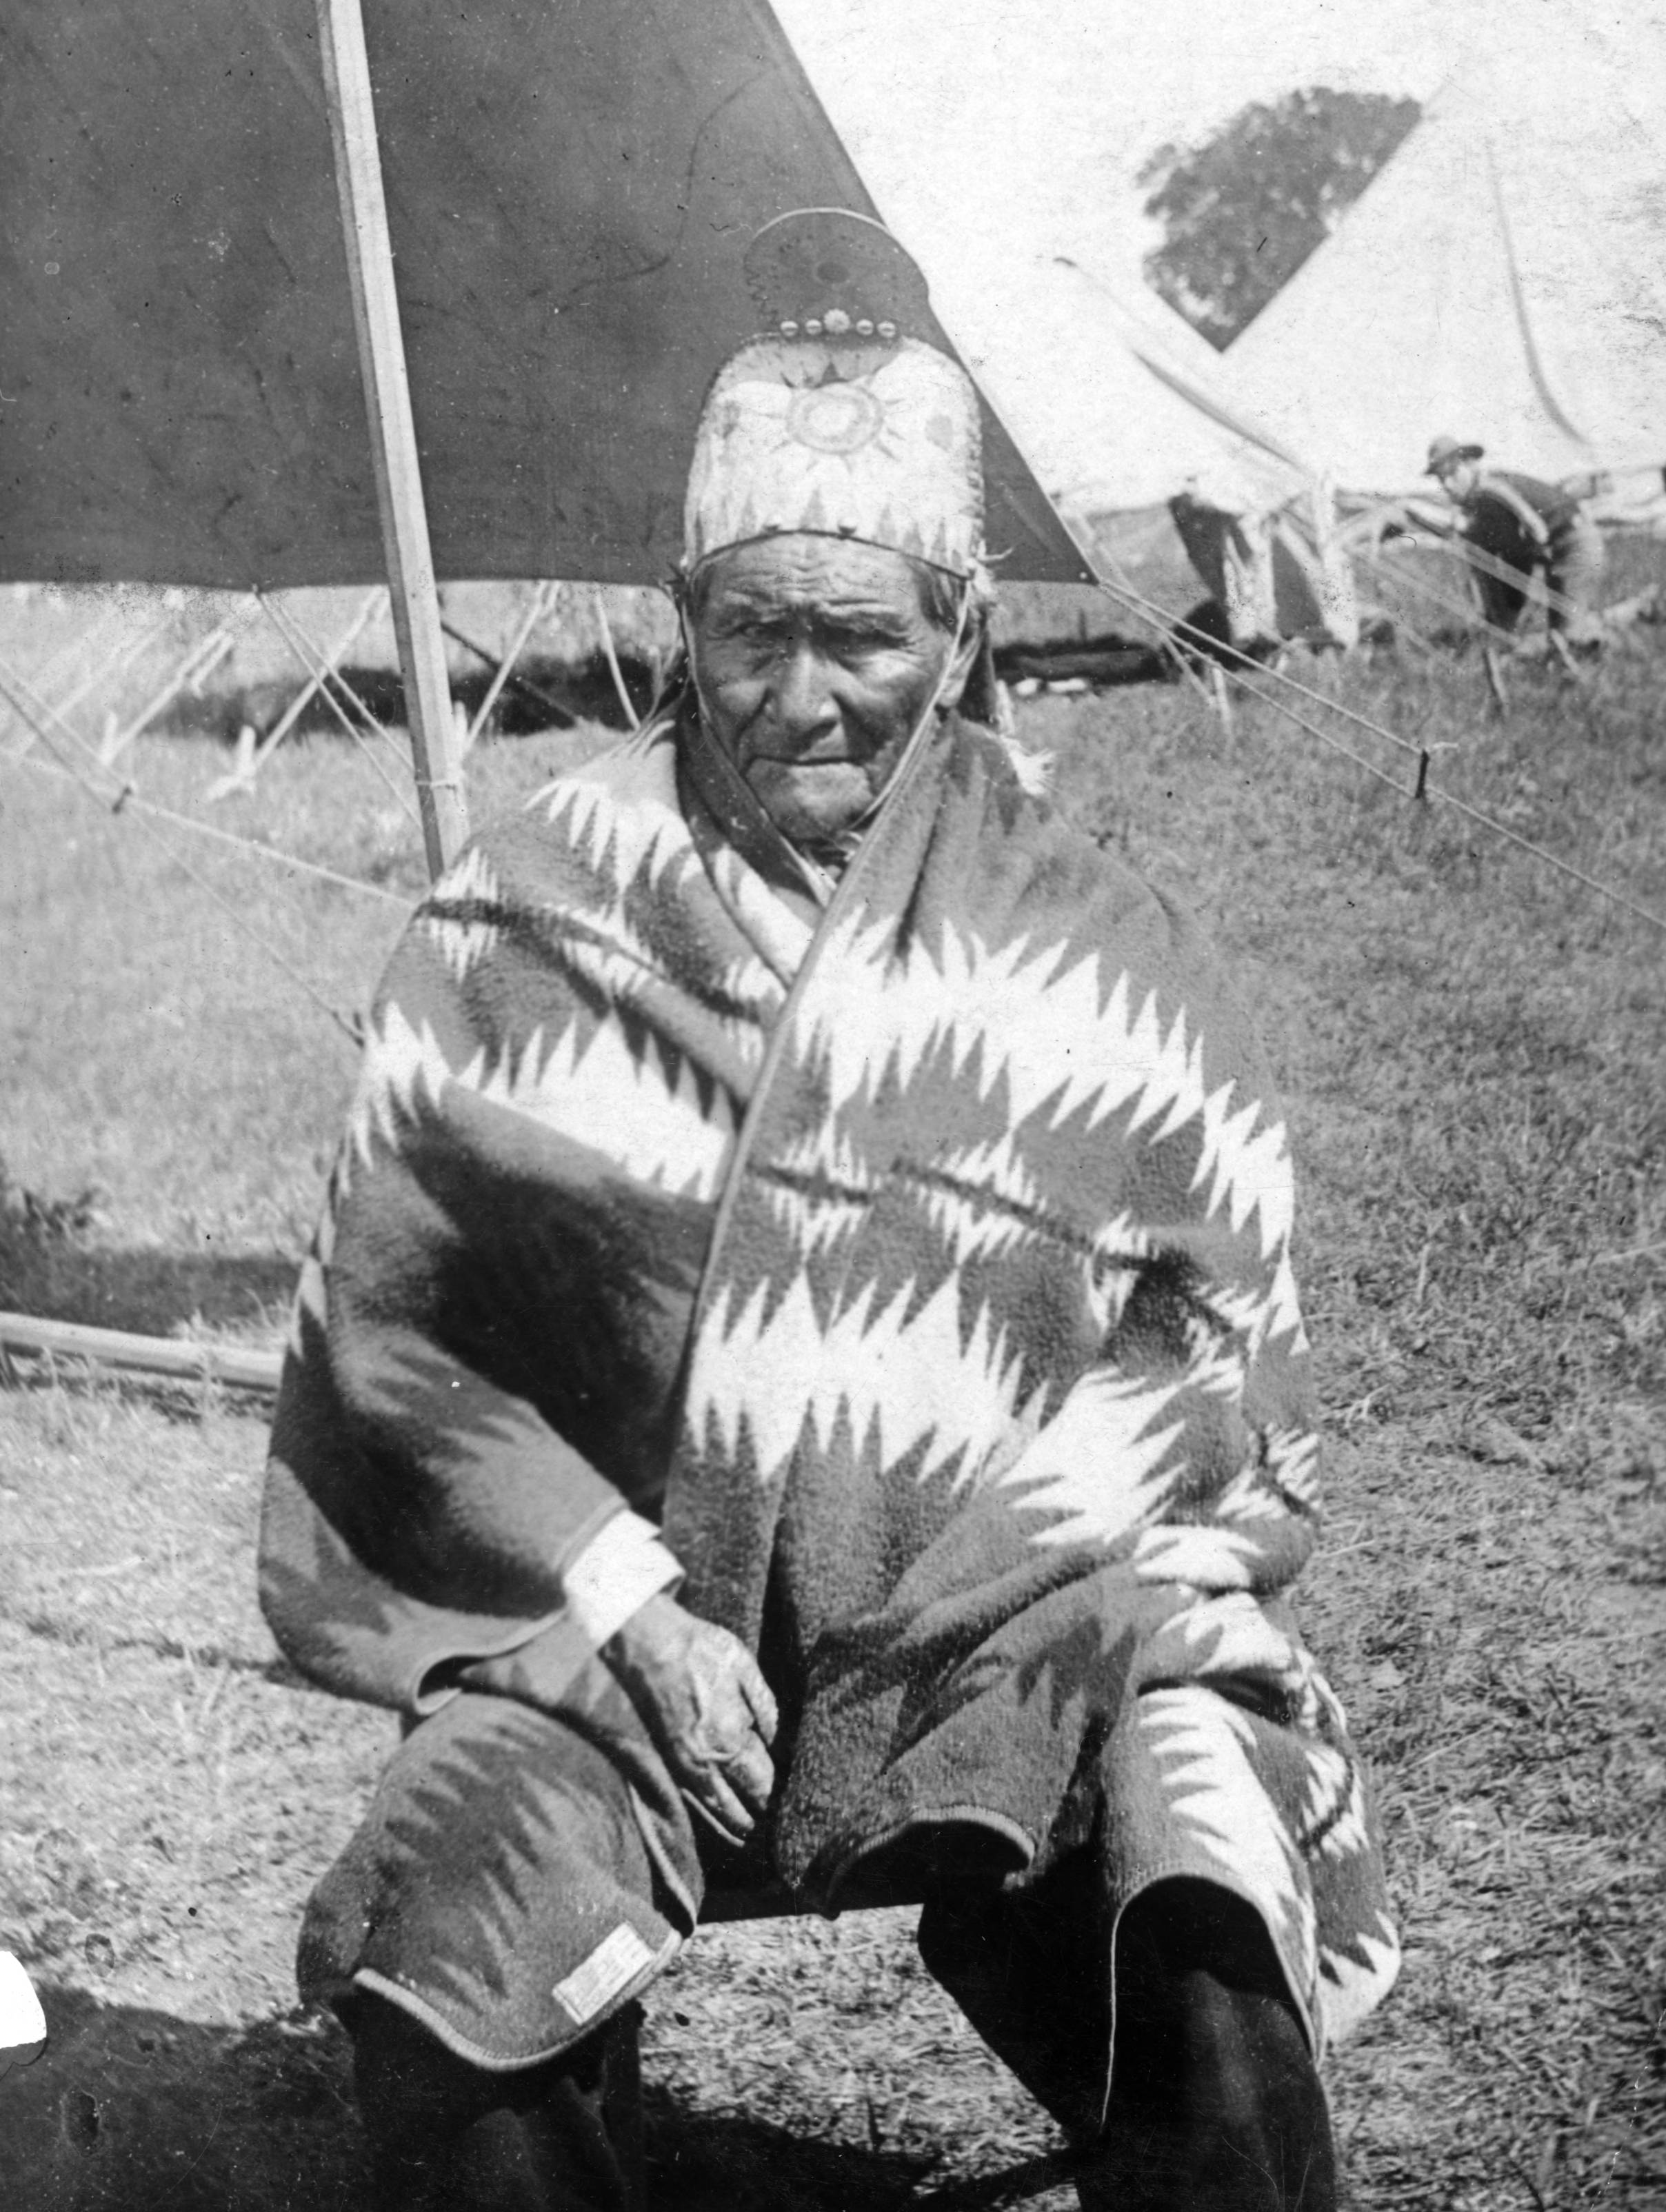 https://i1.wp.com/upload.wikimedia.org/wikipedia/commons/3/36/Geronimo%2C_as_US_prisoner.jpg